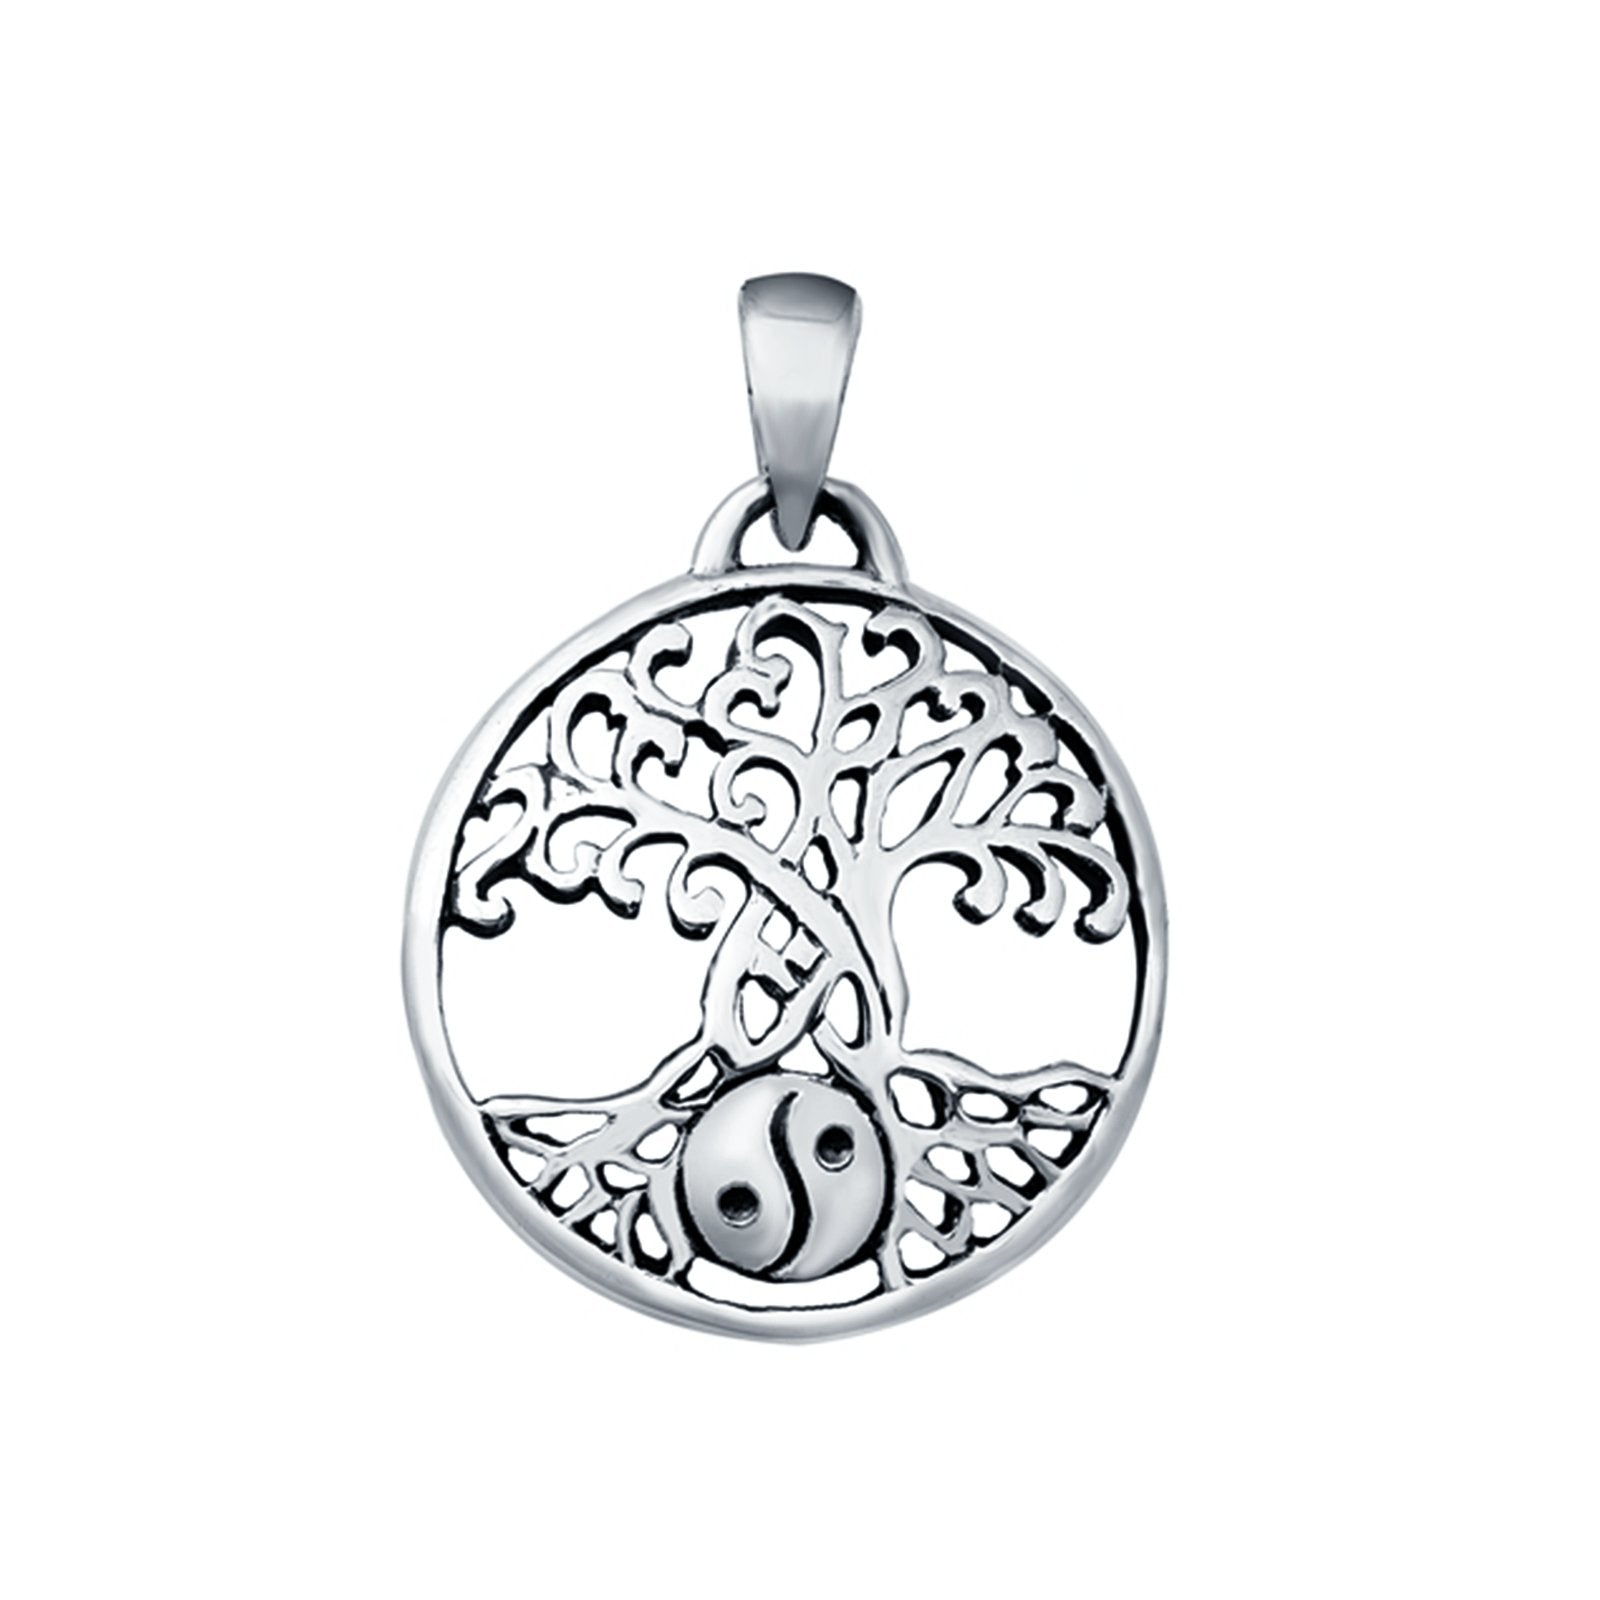 925 Sterling Silver Tree of Life Pendant, Charm Pendant